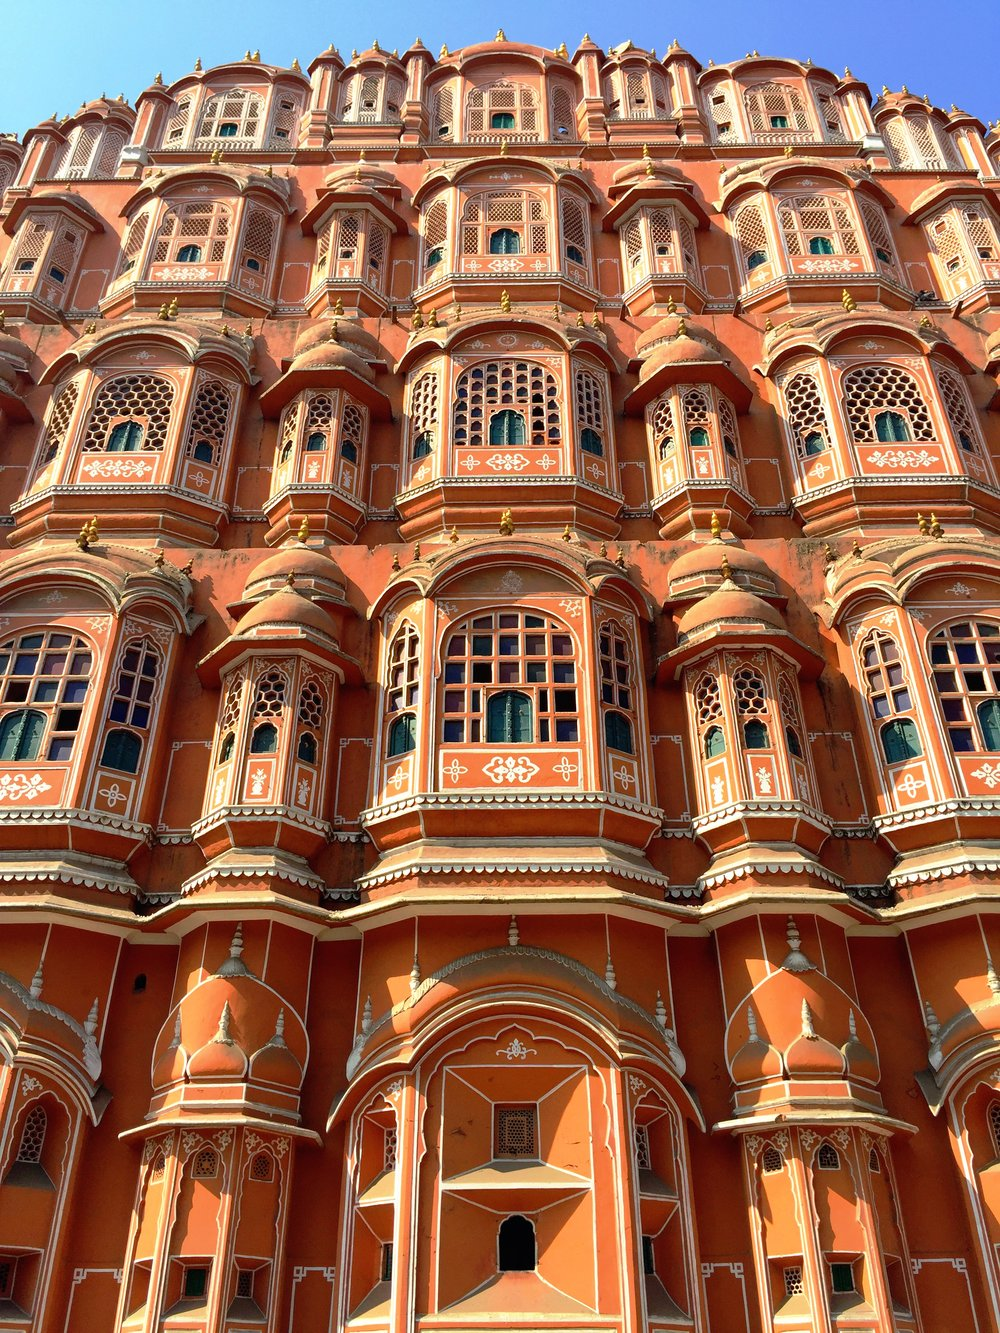 Hawa Mahal - Palace of Winds, Jaipur, India